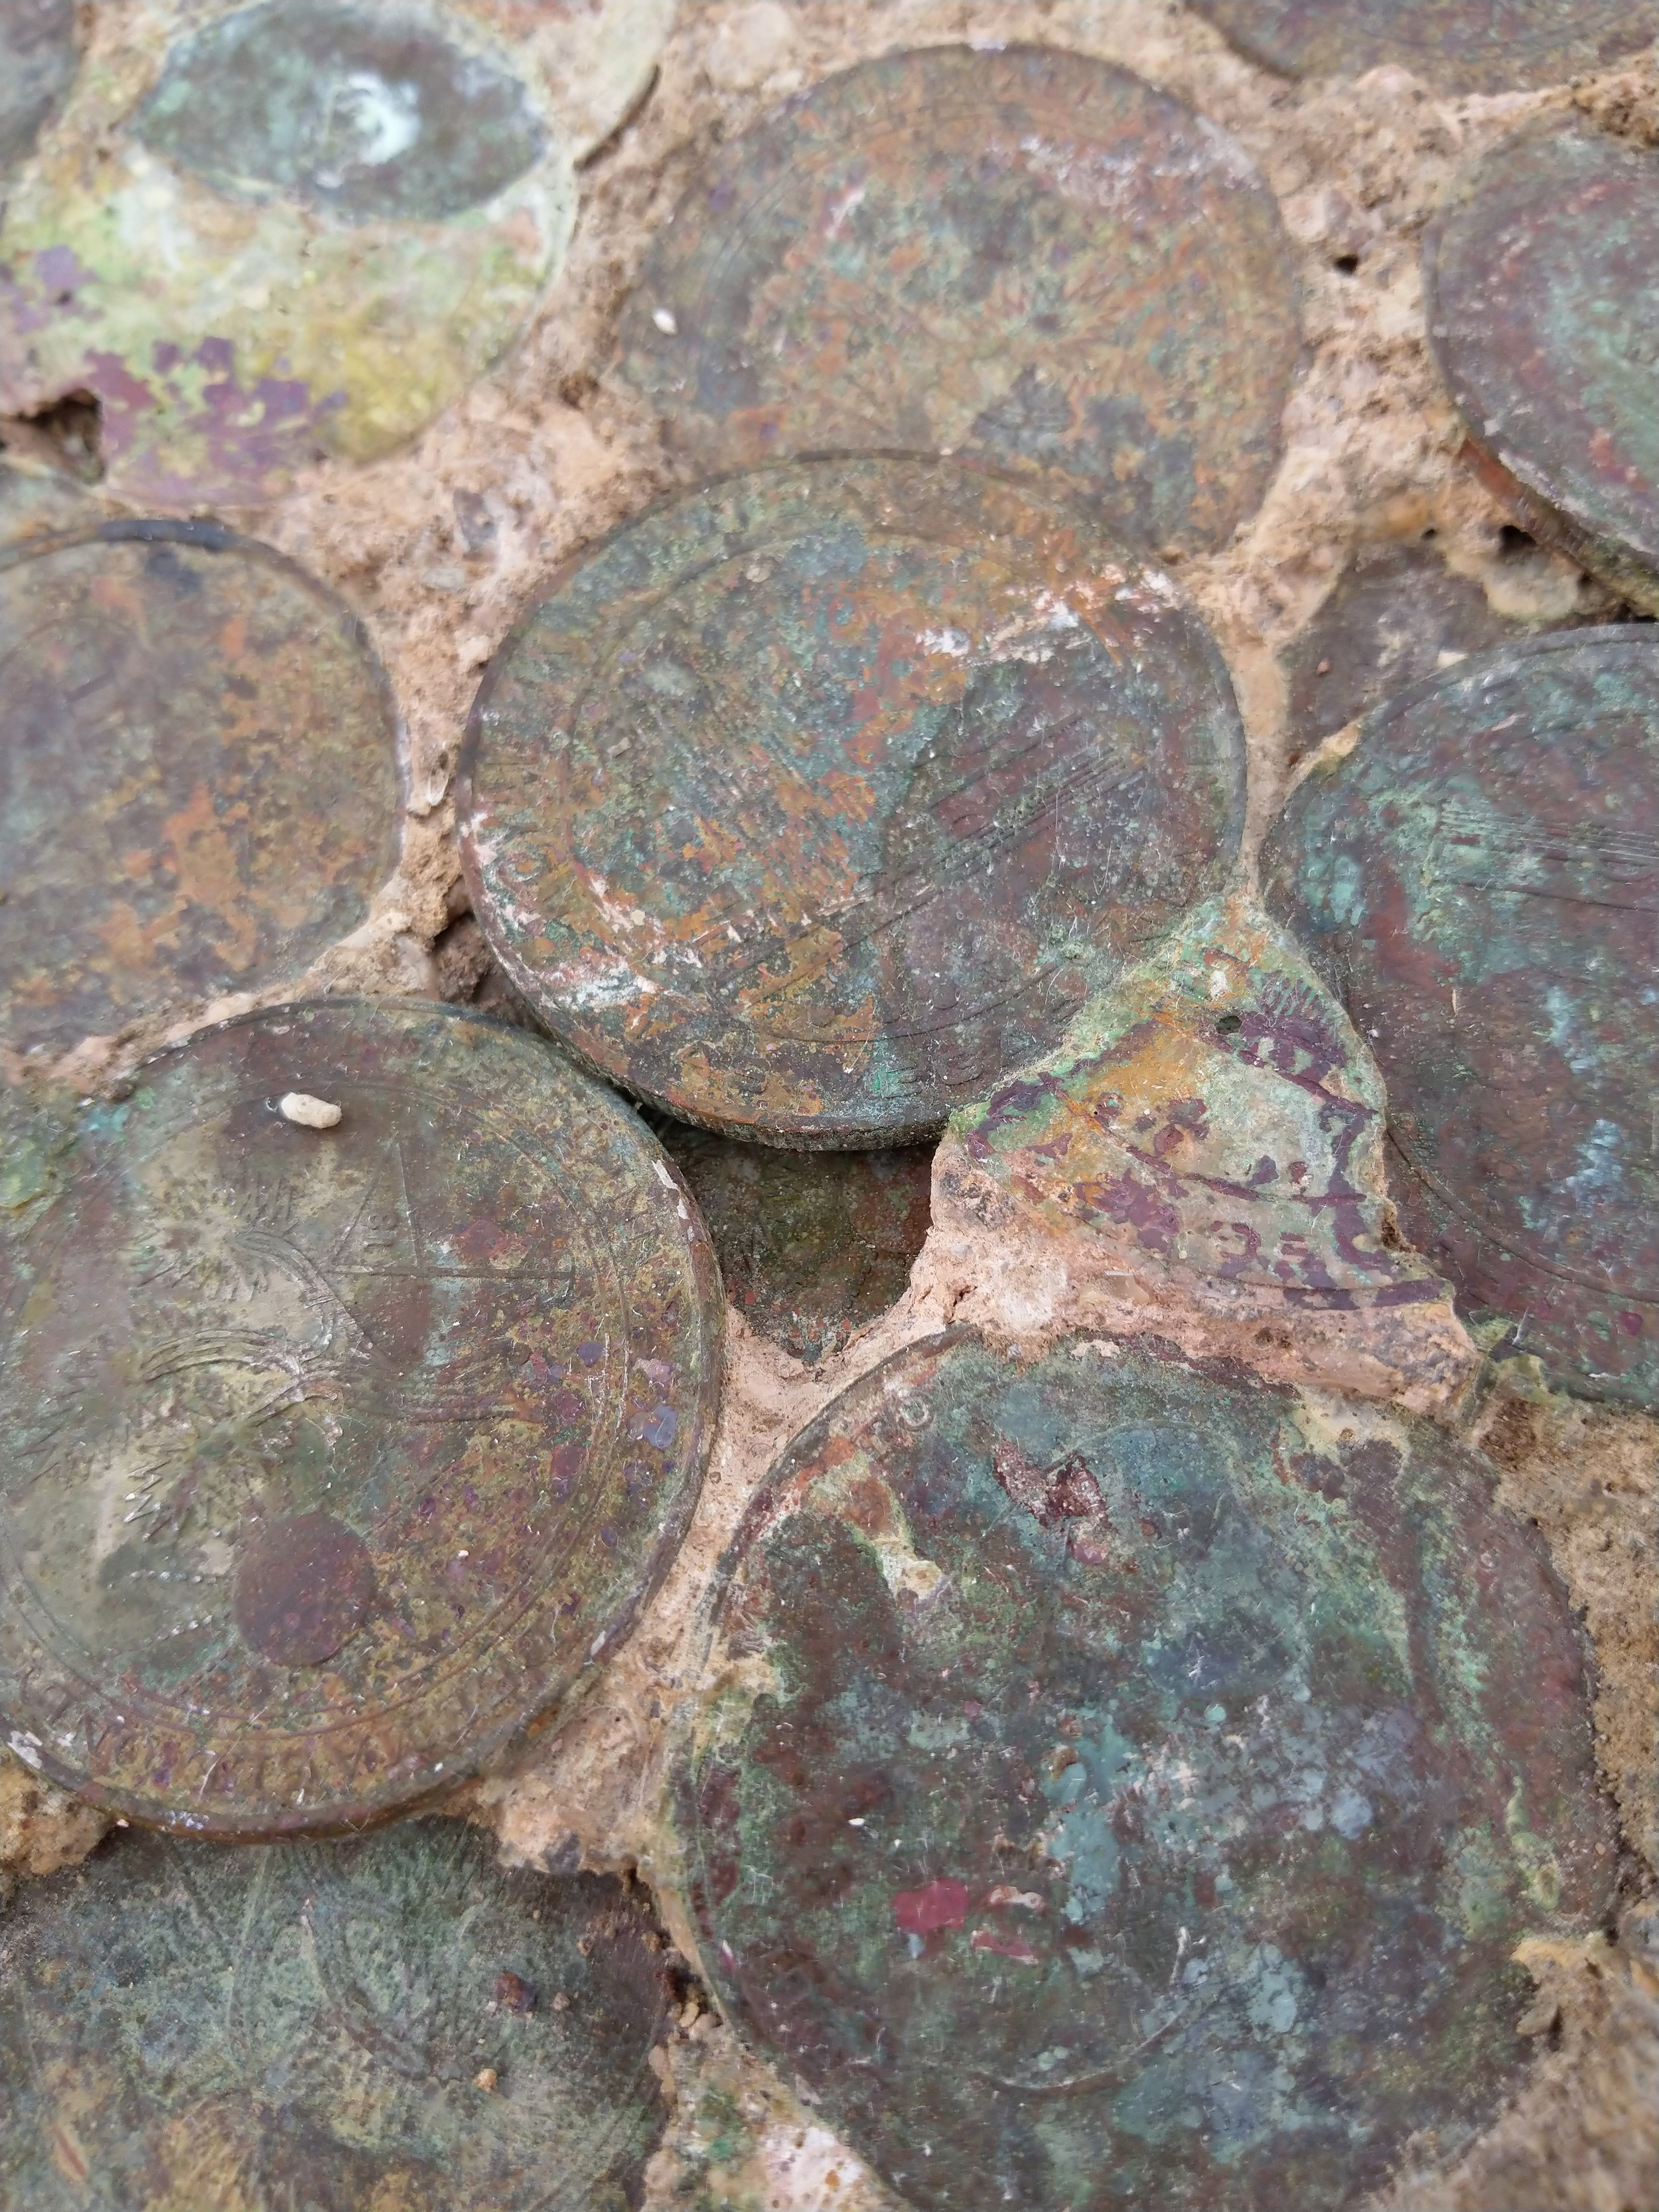 """This was being advertised as """"A fossil from Las Vegas, called 'Vegasite.'"""" If it's not immediately evident, this bit of strata and cement is populated by casino tokens in various states of decomposition and corrosion."""